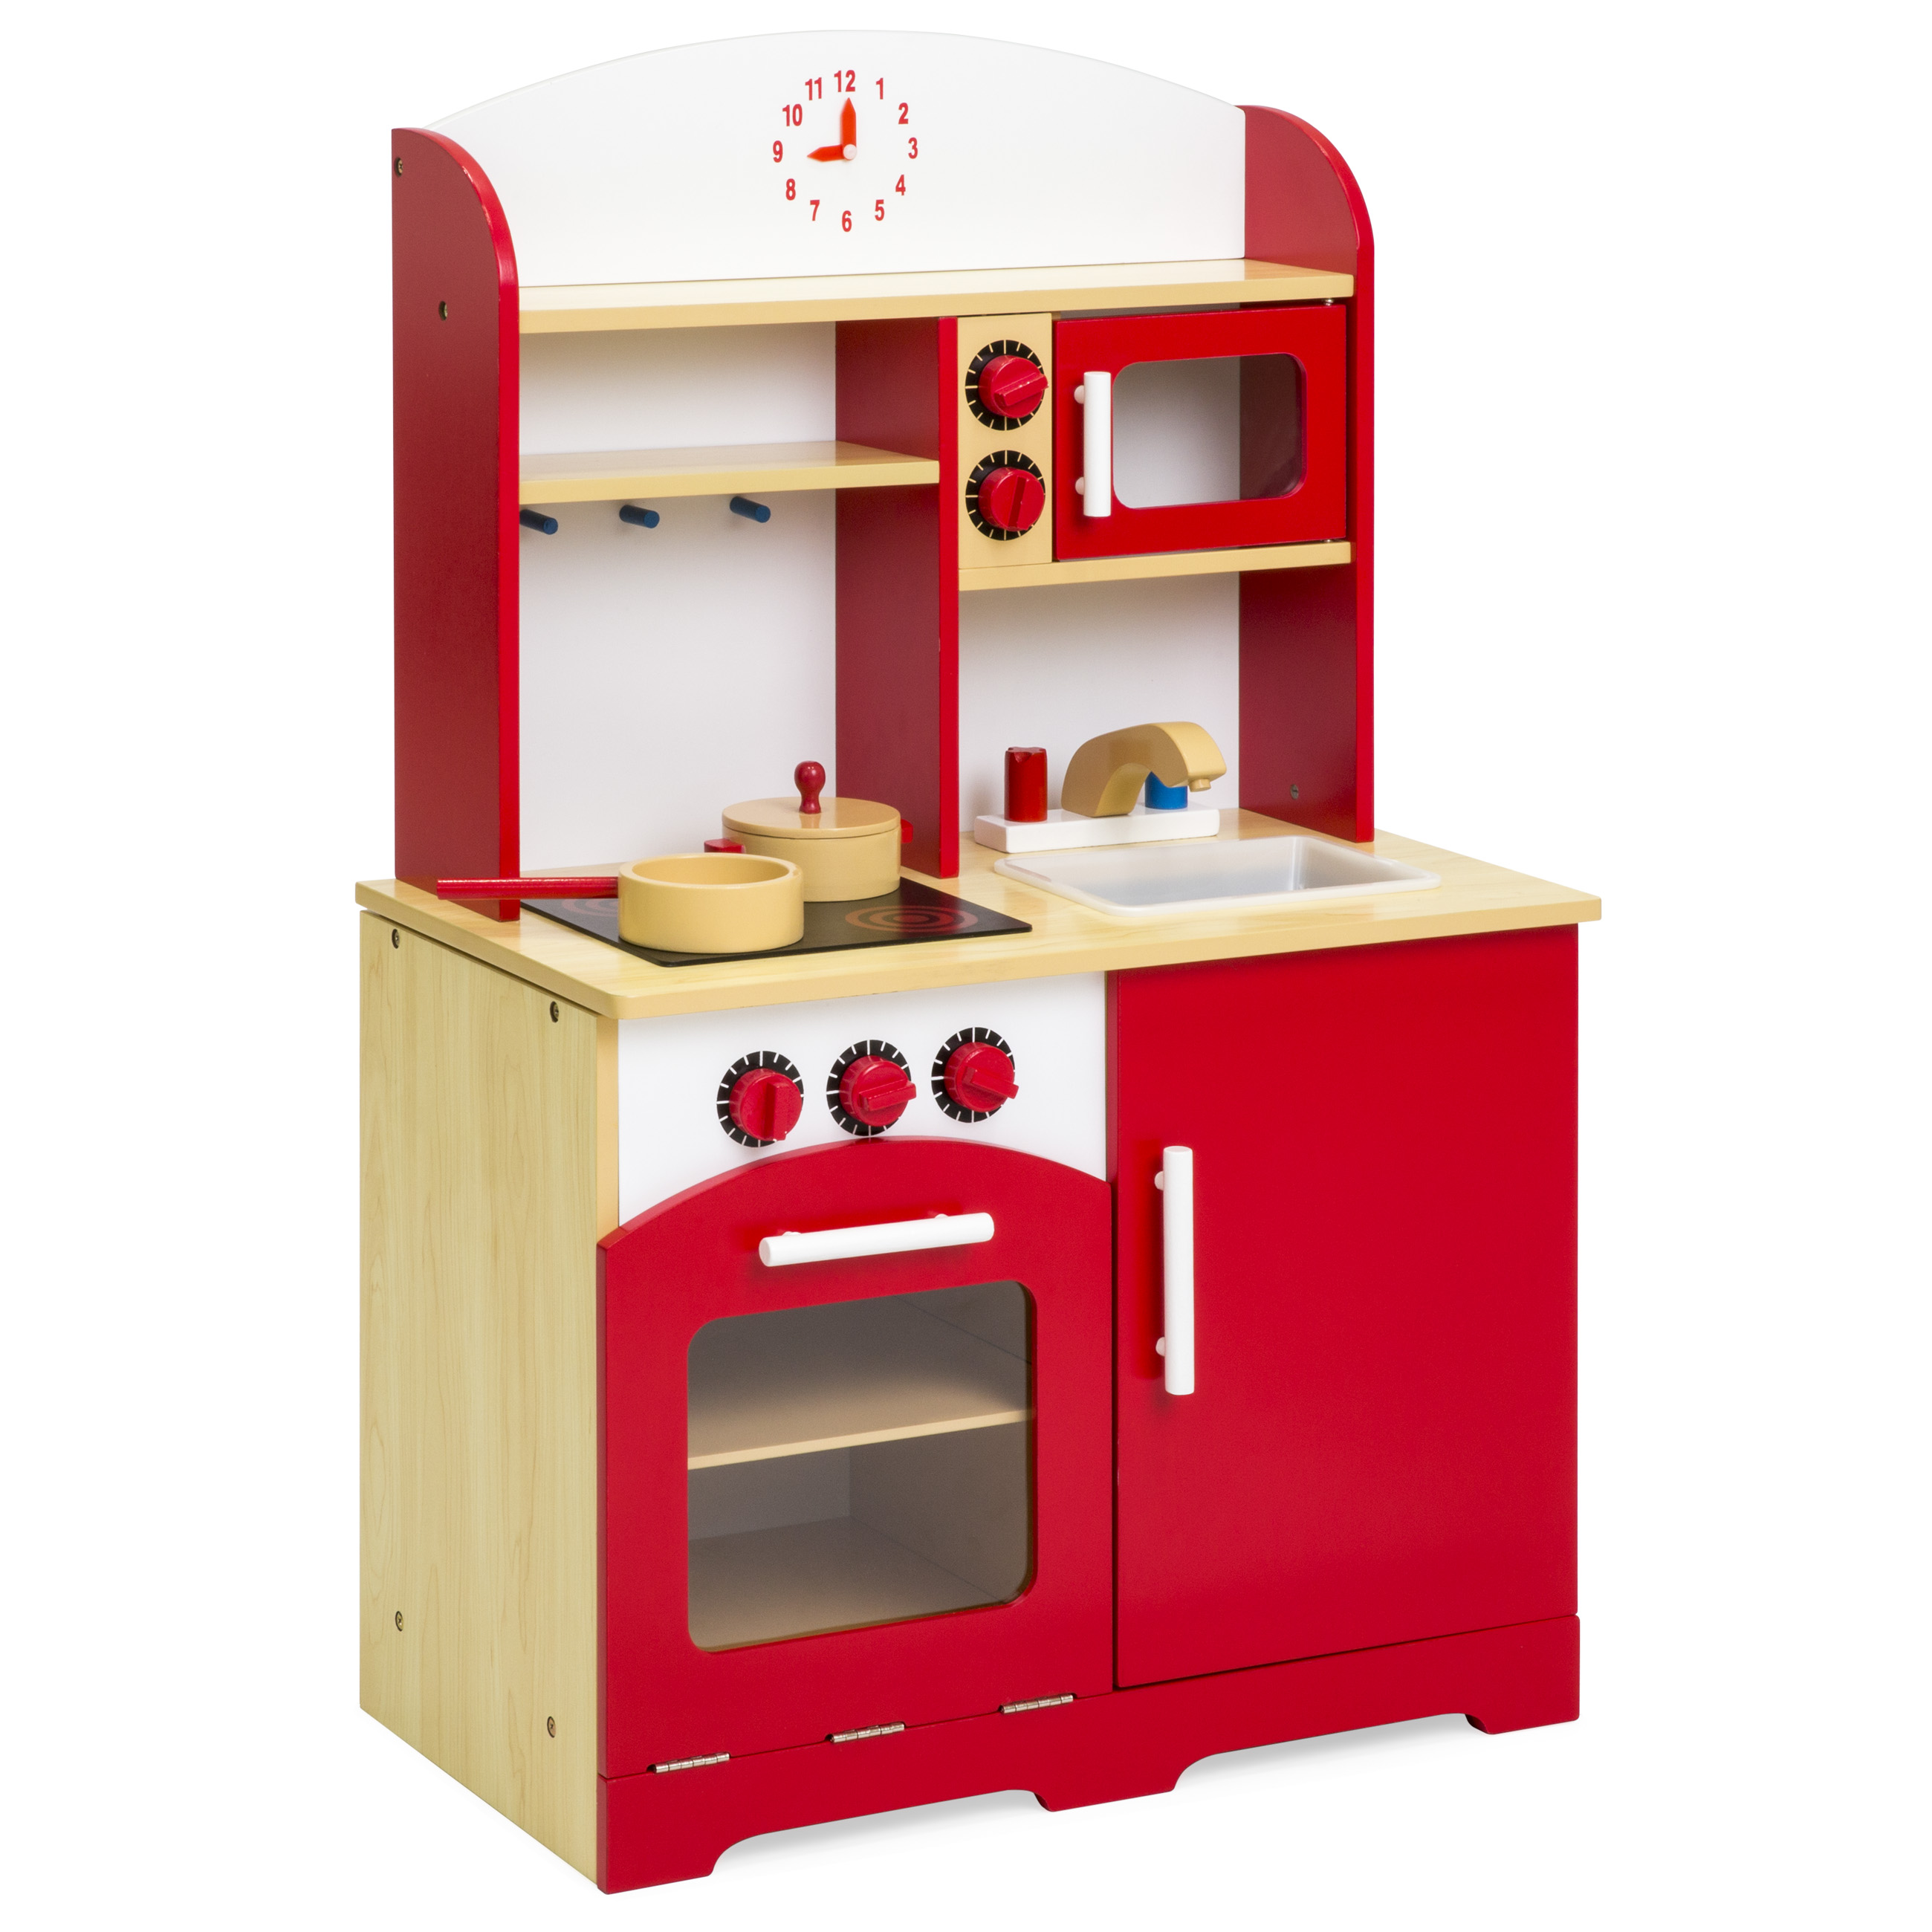 Best Choice Products Kids Wooden Kitchen Cooking Play Set W/ Wooden Pot U0026  Pan Accessories